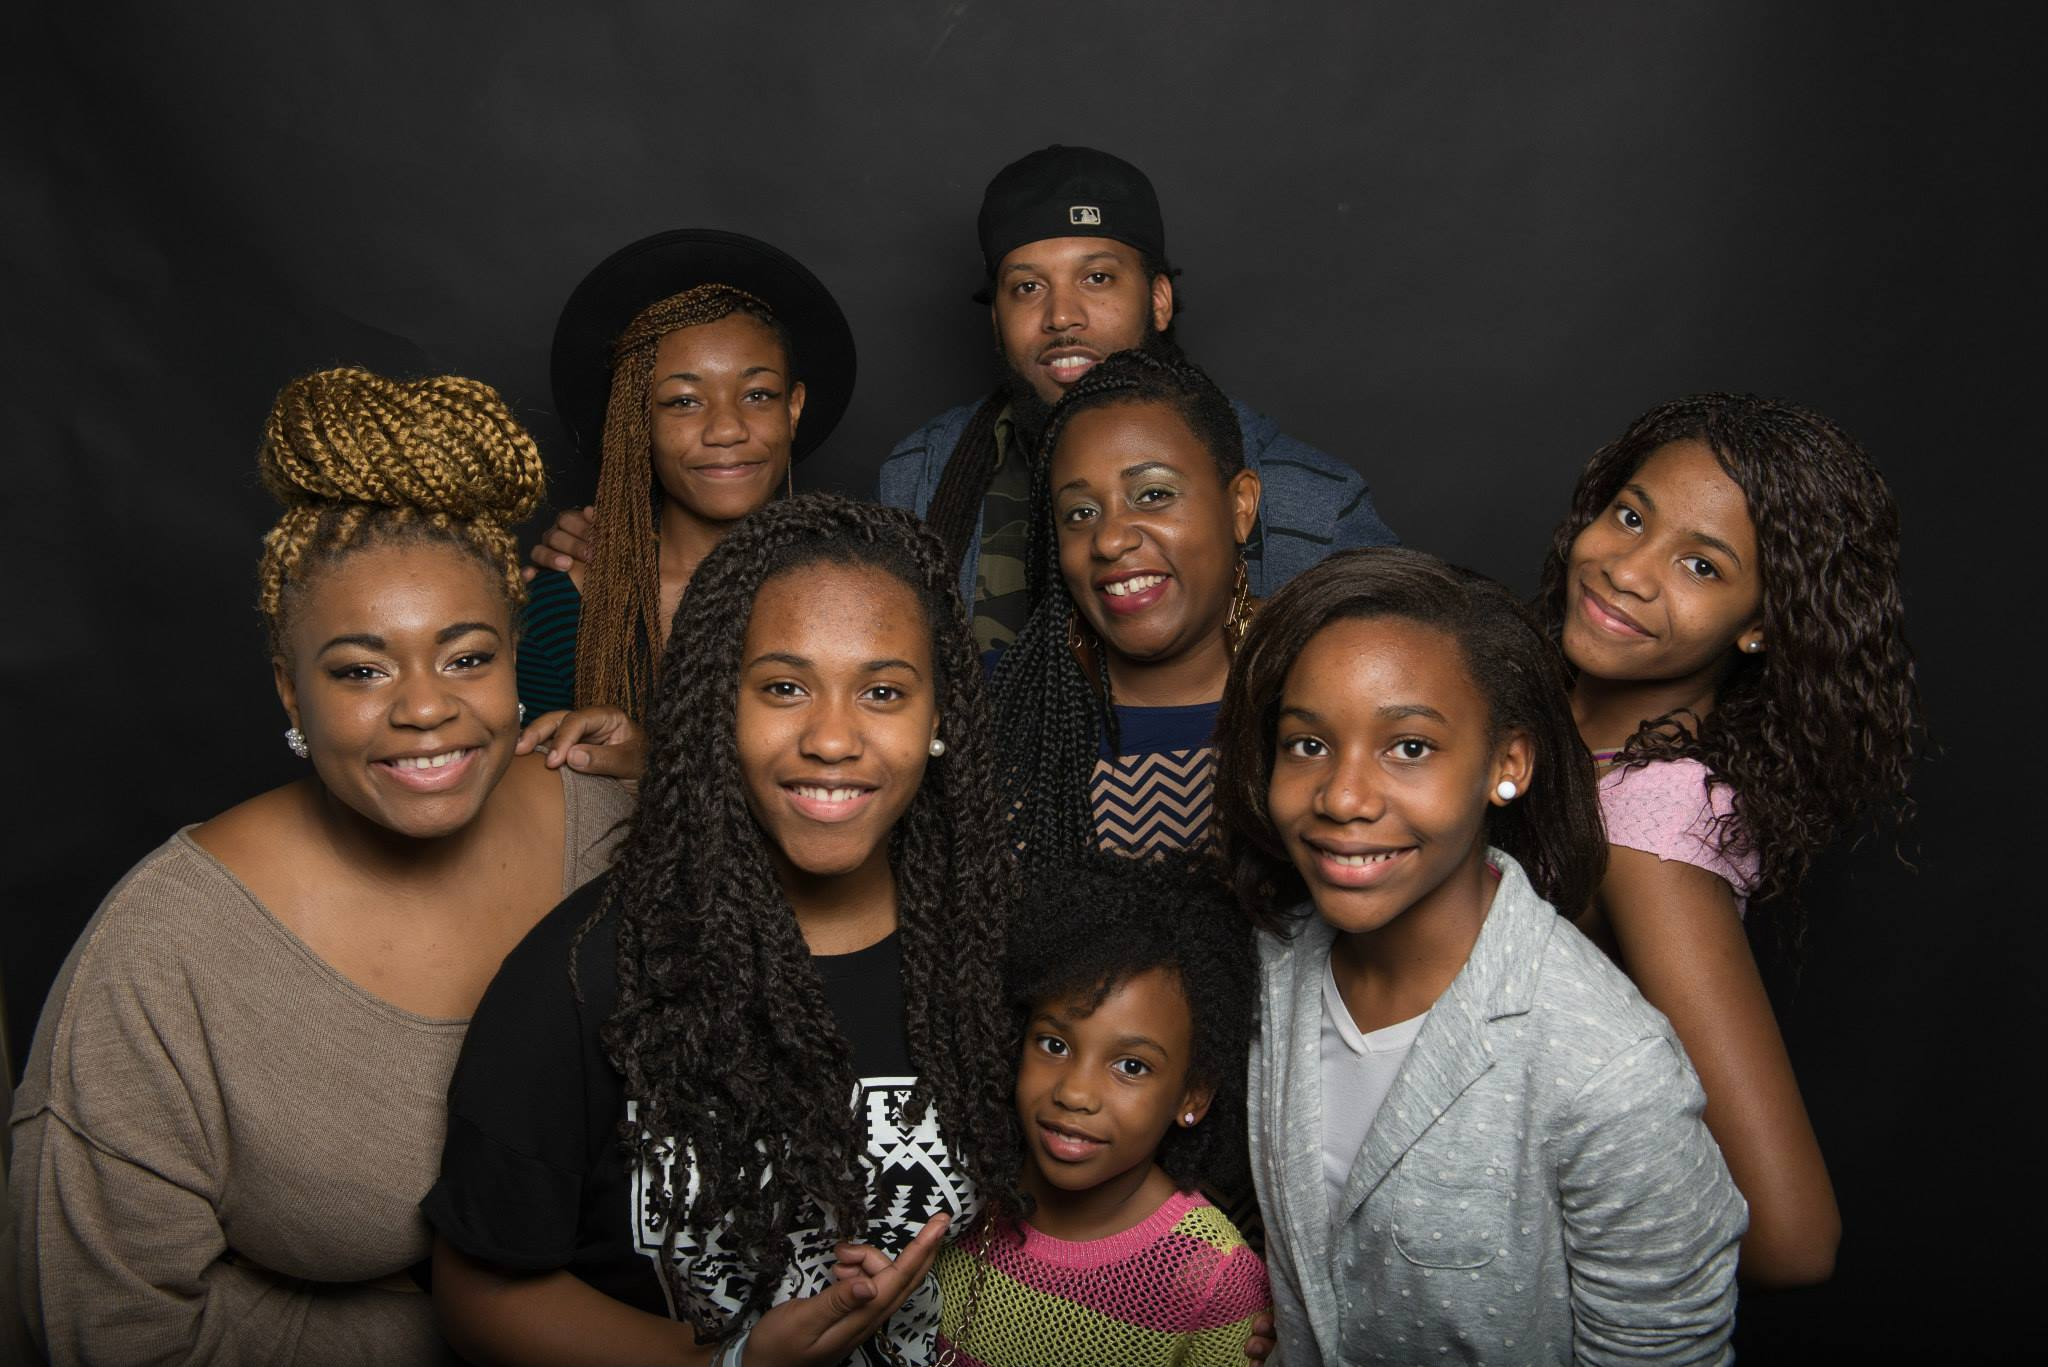 black people and family support When my family had to leave our  rebecca carroll column i get why black women support  rebecca carroll column people who don't 'see race' are erasing black.